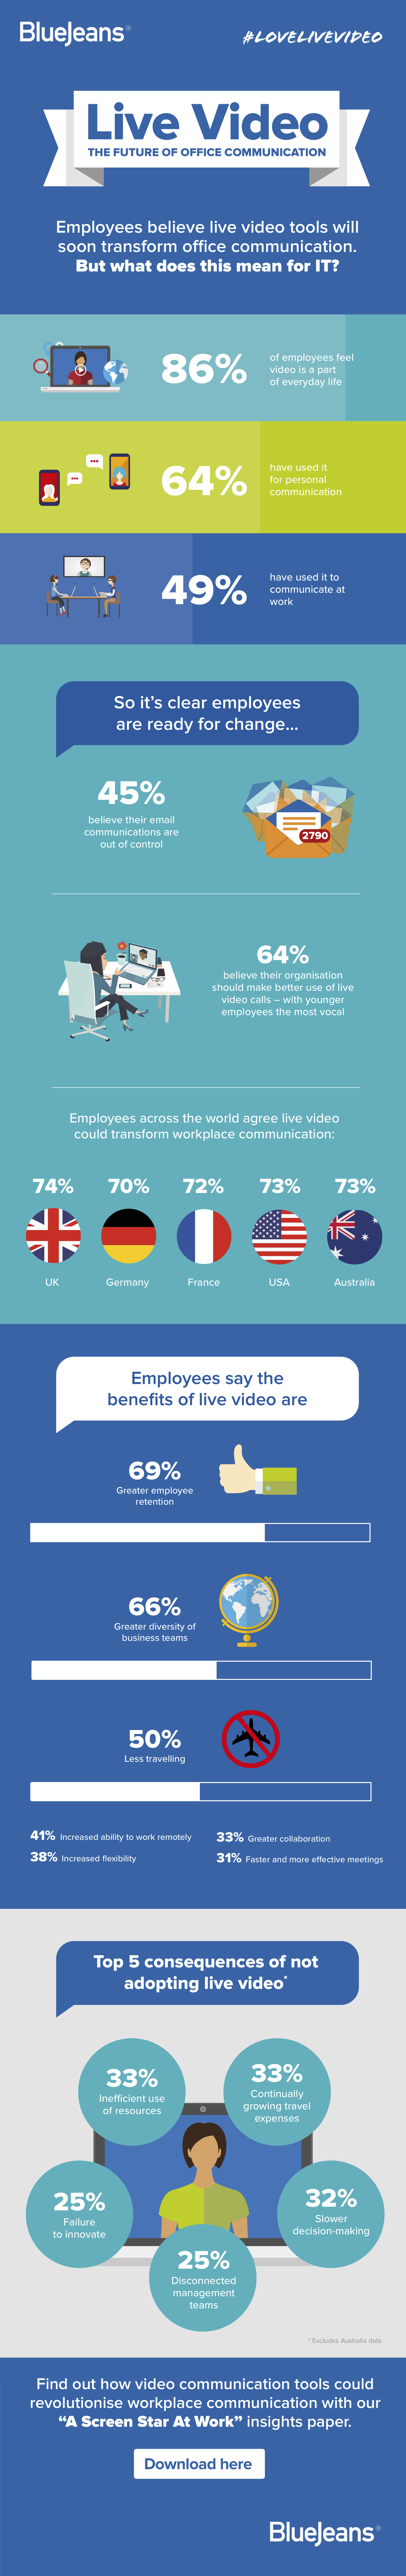 Live Video: The Future of Office Communication